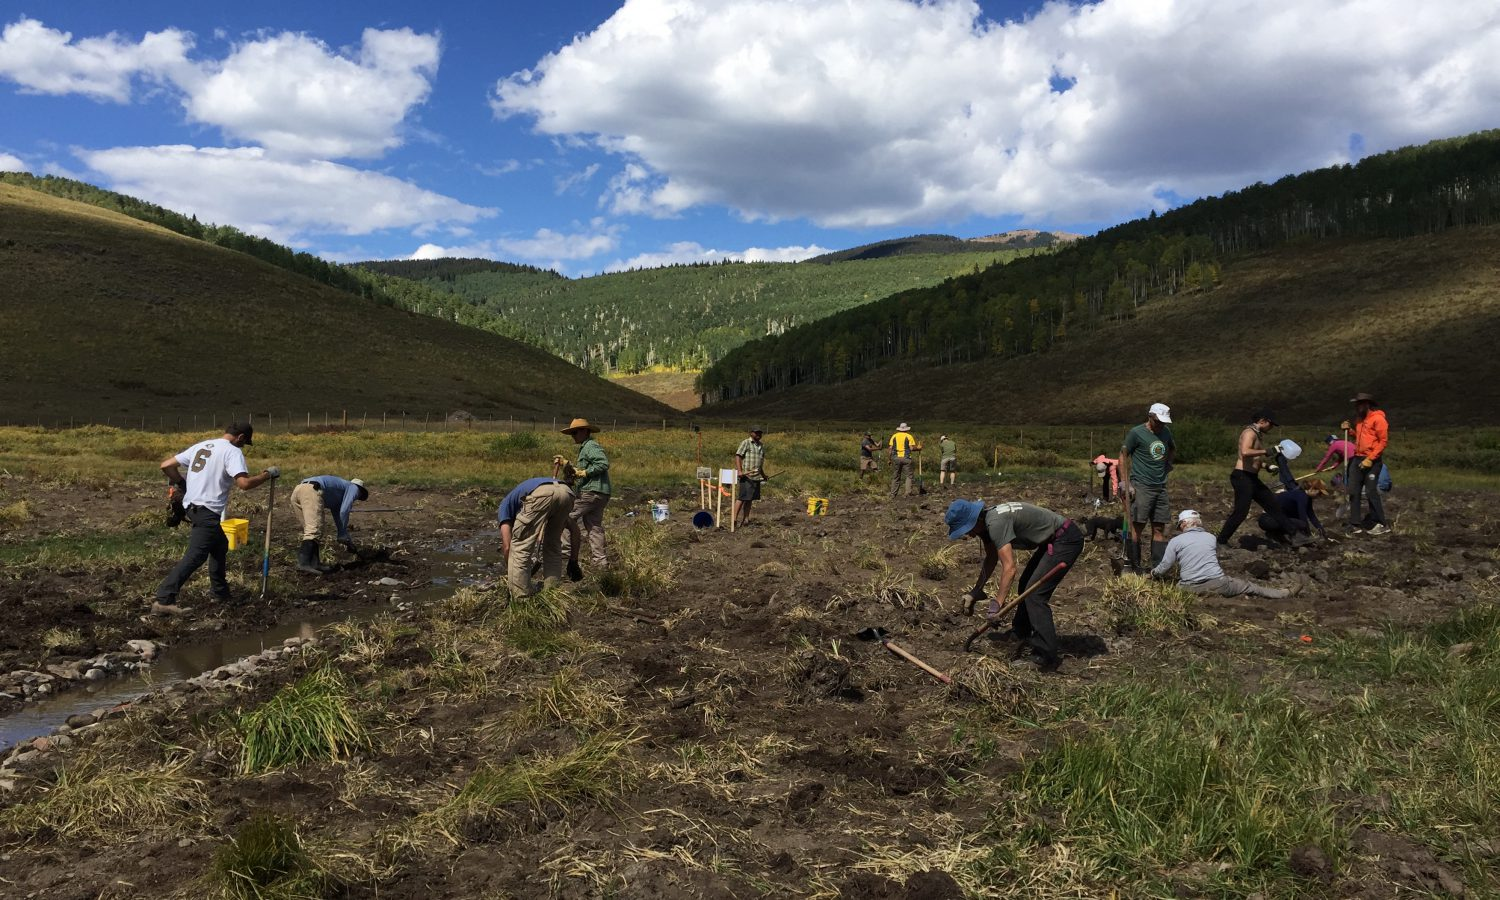 National Environmental Education Foundation and Toyota Award Grants to Restore Public Lands Impacted by Natural Disaster